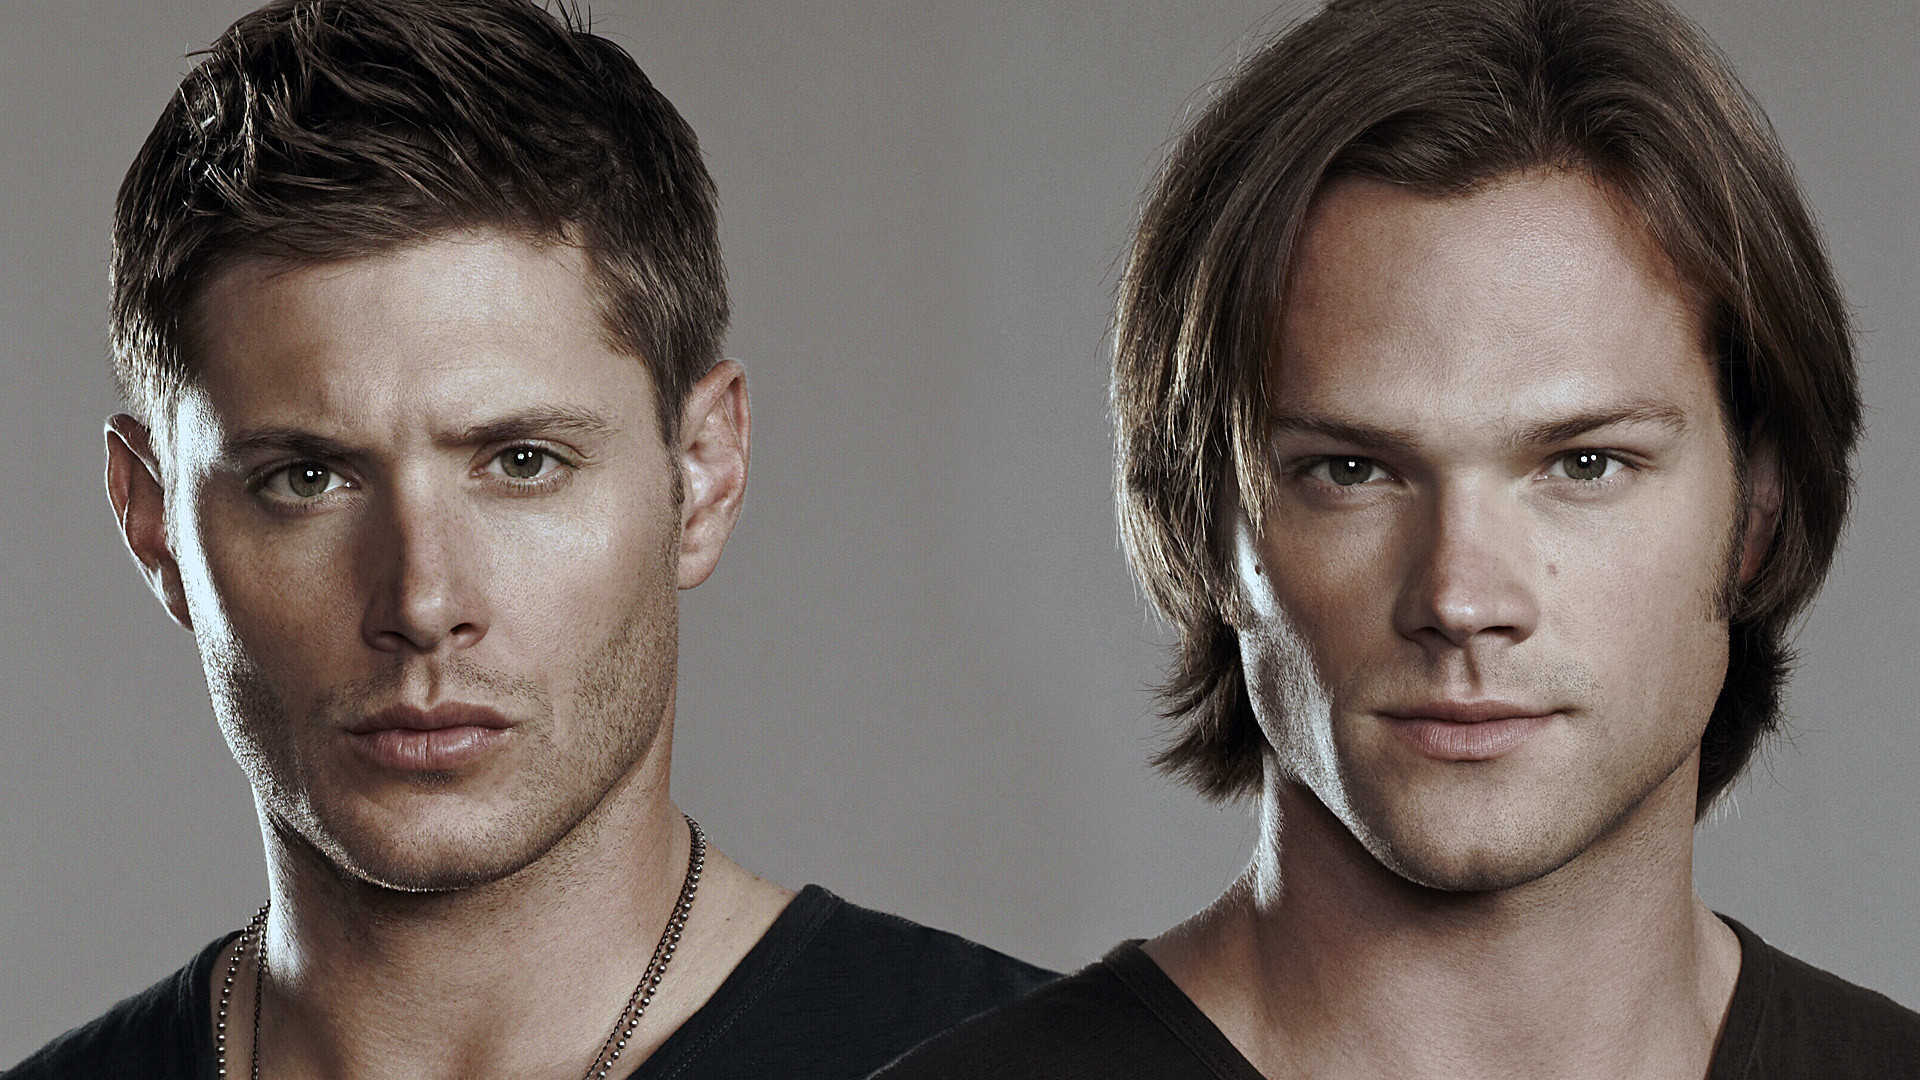 Wallpaper Jared Padalecki Jensen Ackles Wallpapers HD Upload At 1920x1080